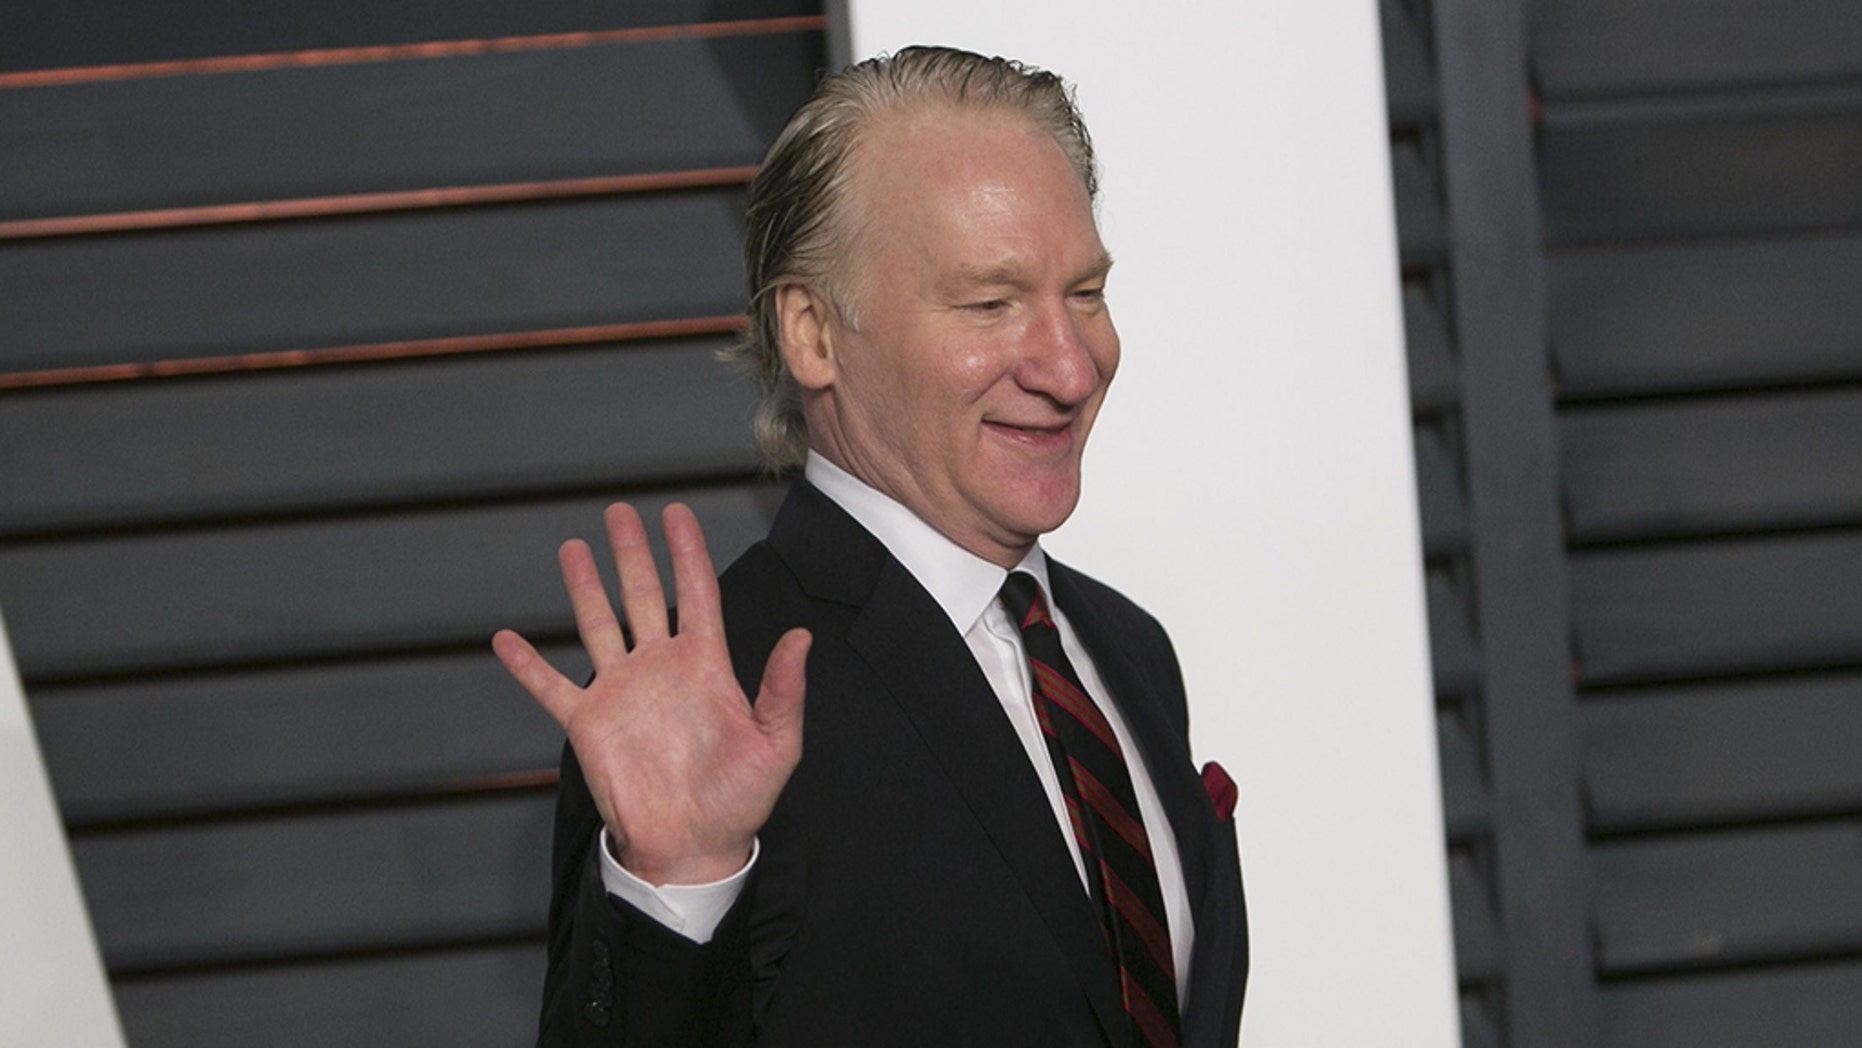 Bill Maher arrives at an Oscar party on Feb. 22, 2015, in Beverly Hills, Calif. (Adrian Sanchez-Gonzalez/AFP/Getty Images)